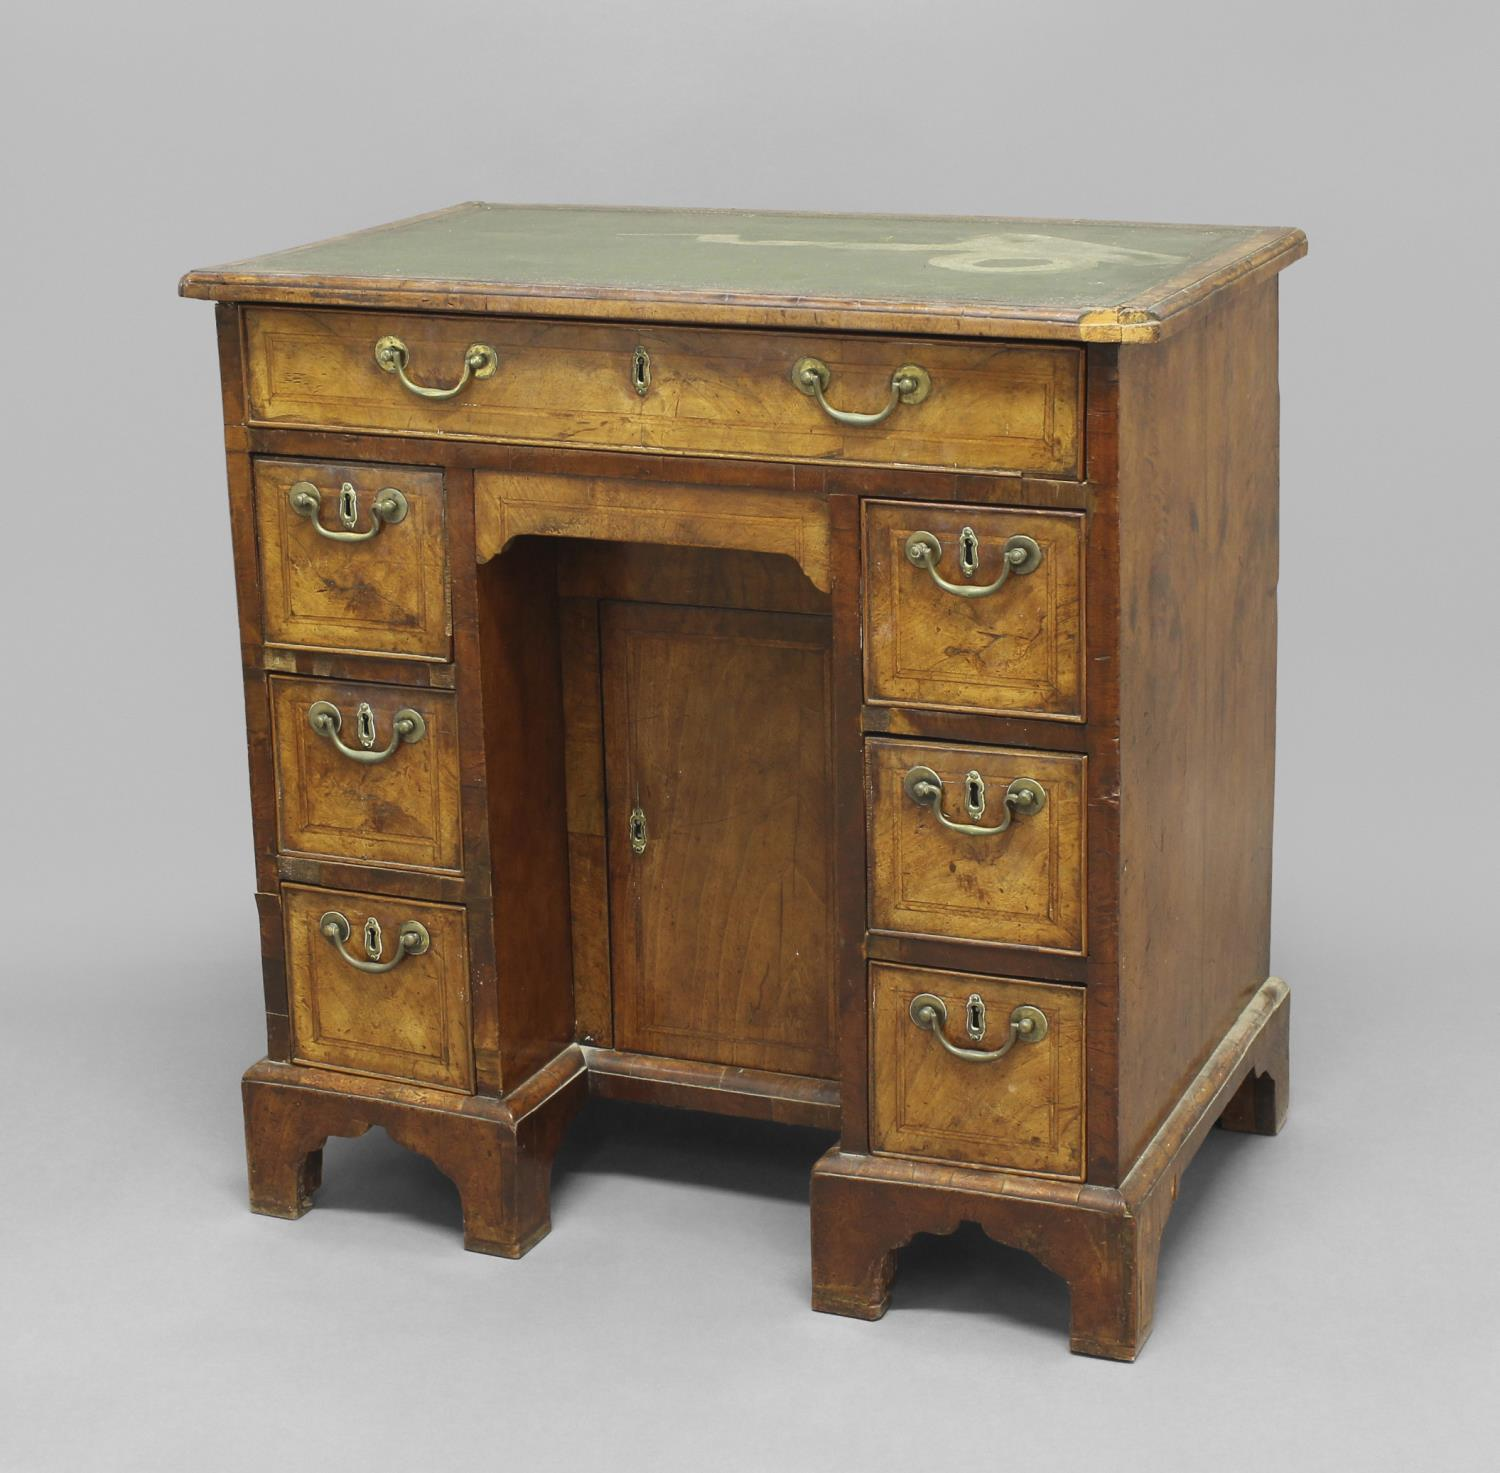 A GEORGE II WALNUT KNEEHOLE DESK, the leather top above one long drawer and an arrangement of six - Image 2 of 2